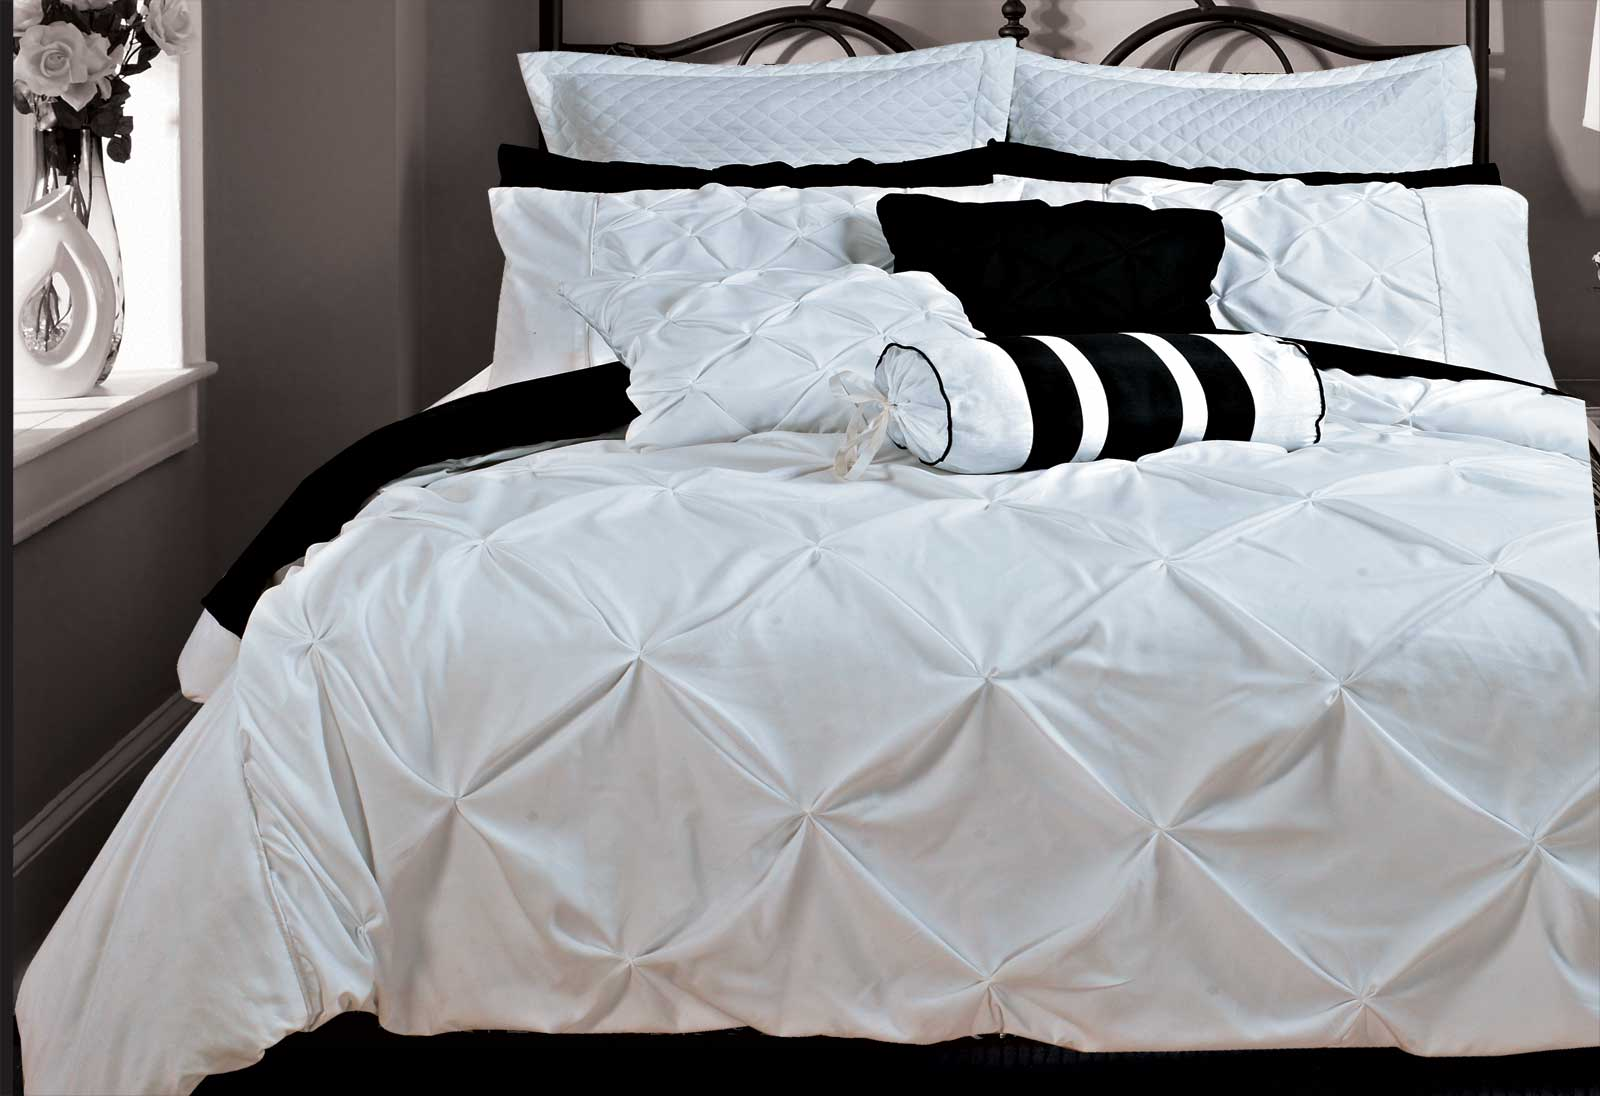 King Size Duvet Cover | Pottery Barn Duvet Covers | White Duvet Cover Queen